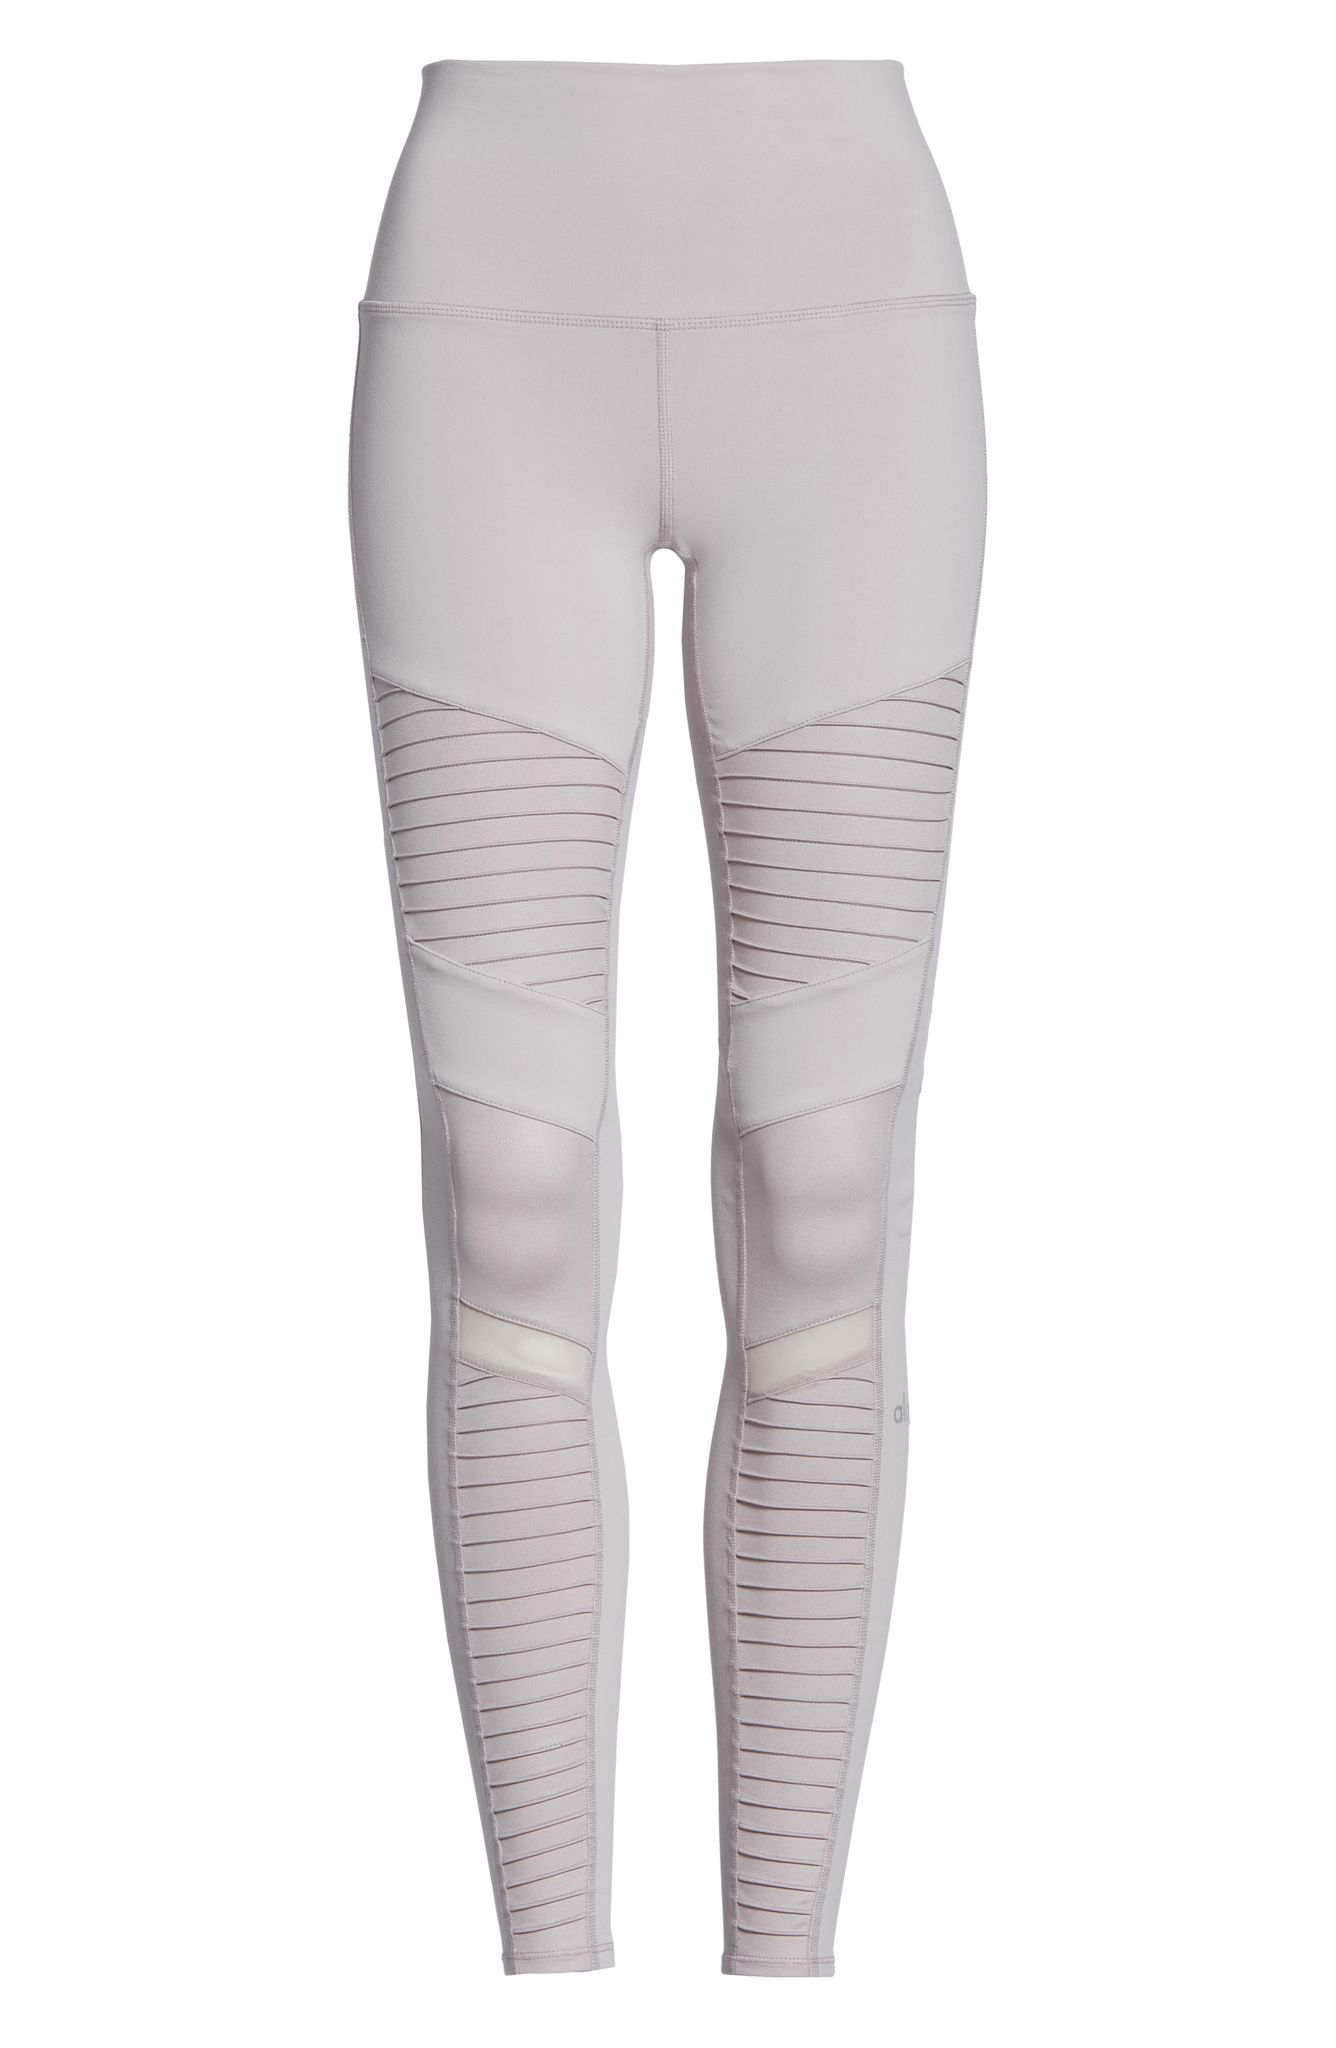 ALO High-Waist Leggings (normally $114): NOW $75.90 (Image: Nordstrom){ }